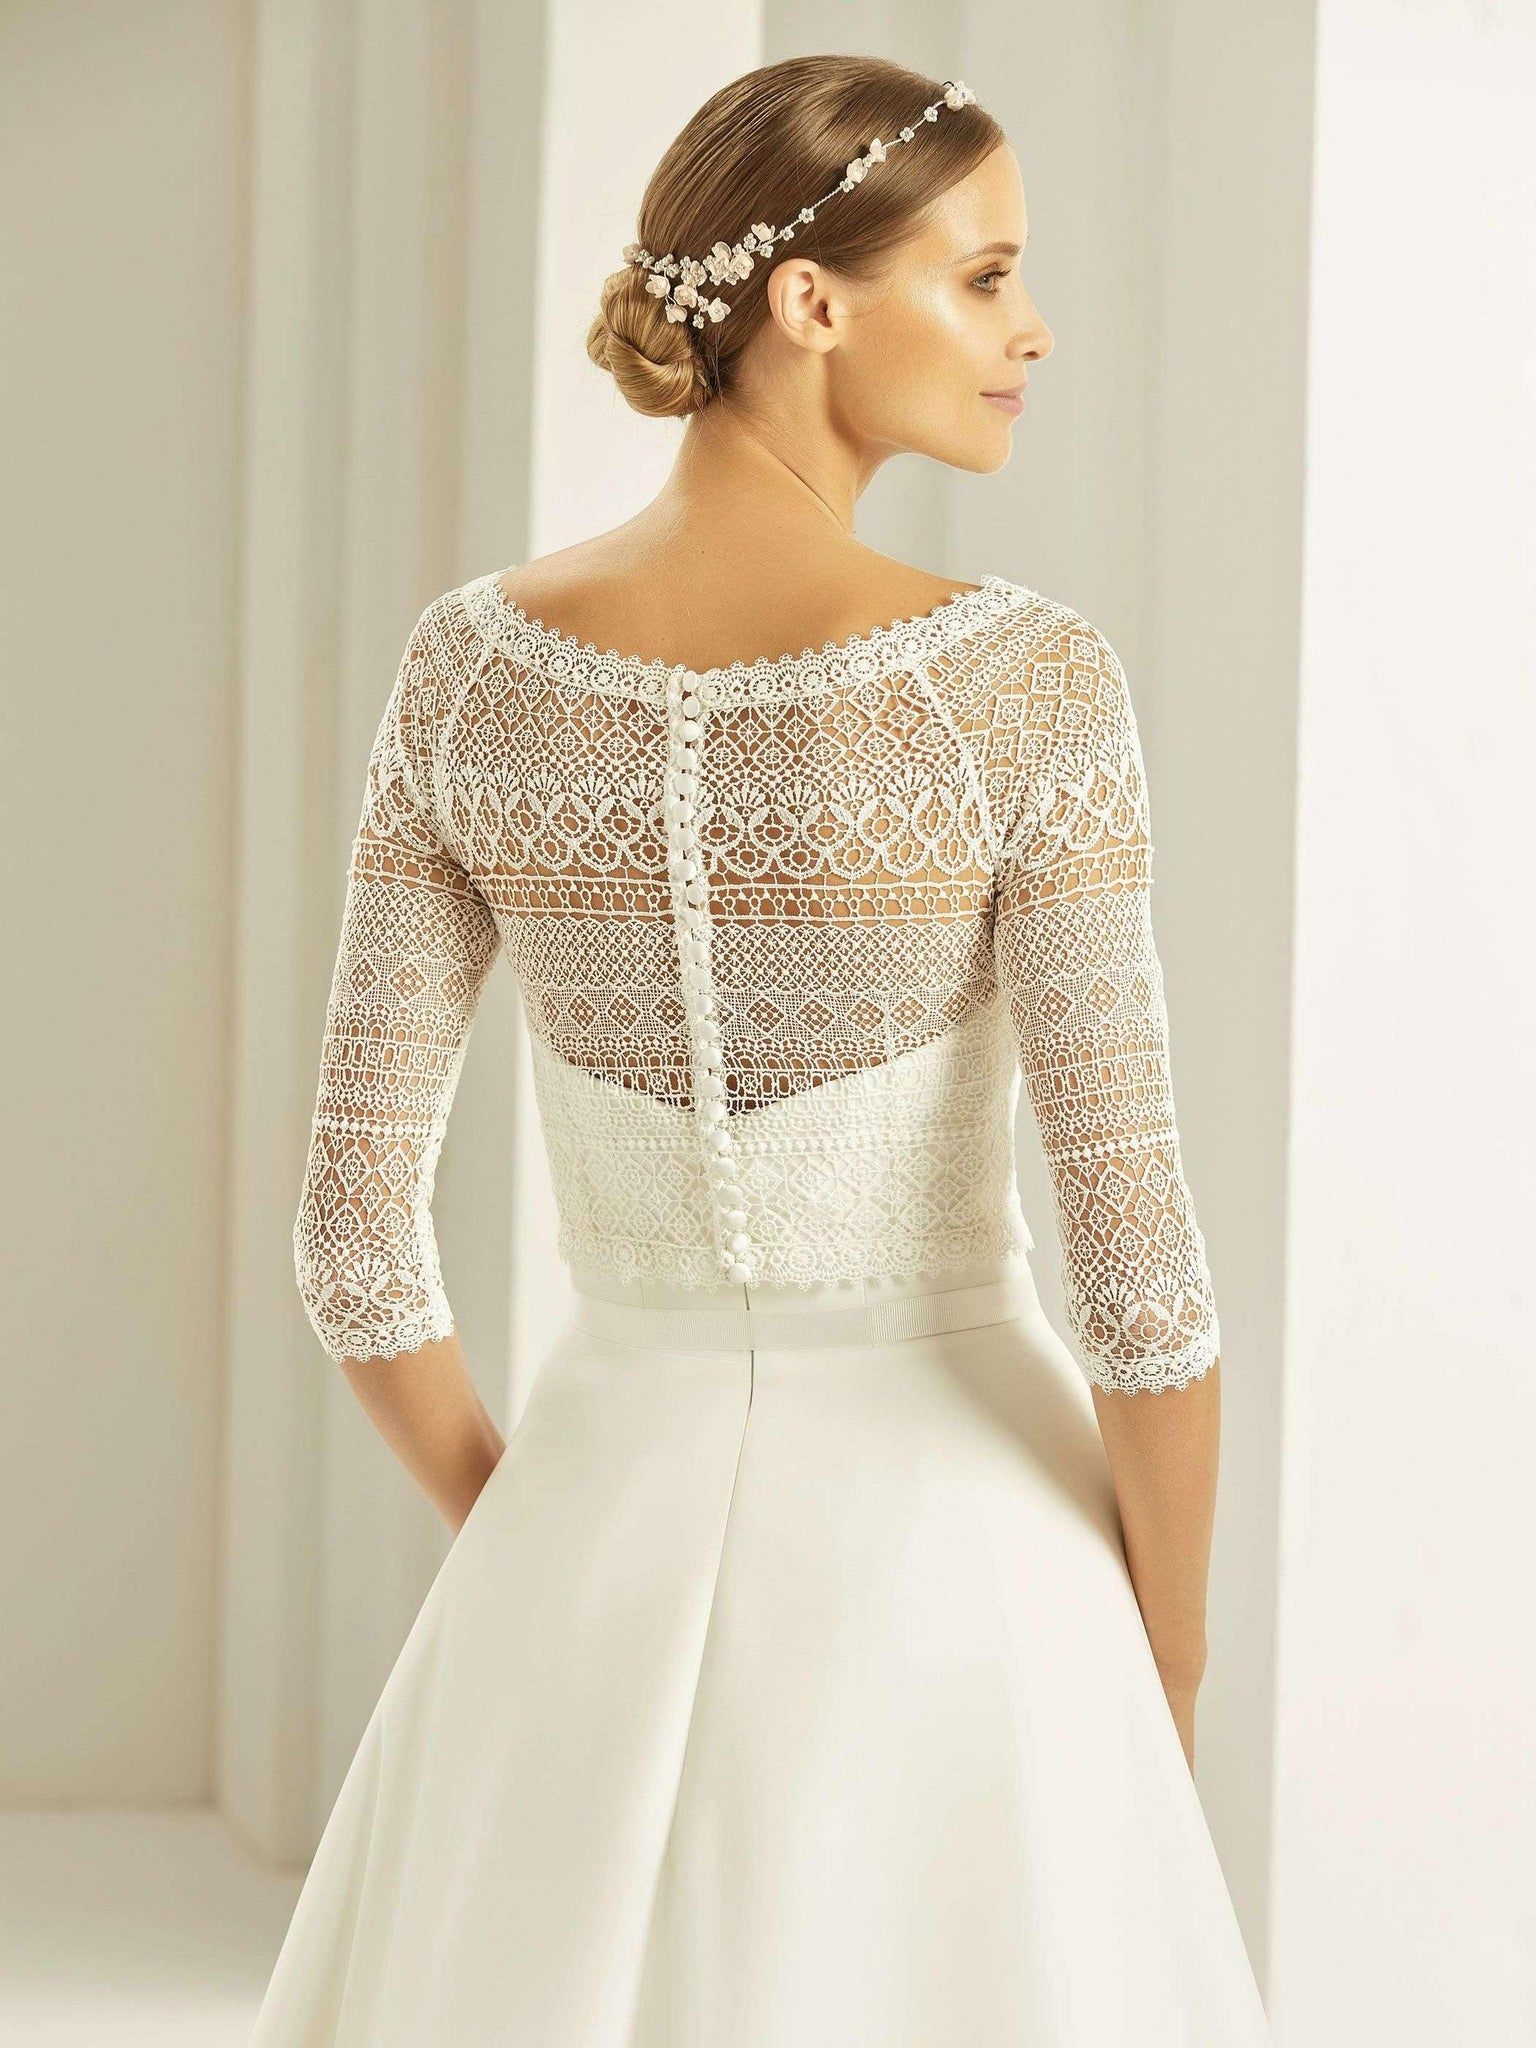 Elle Lace Jacket - Adore Bridal and Occasion Wear